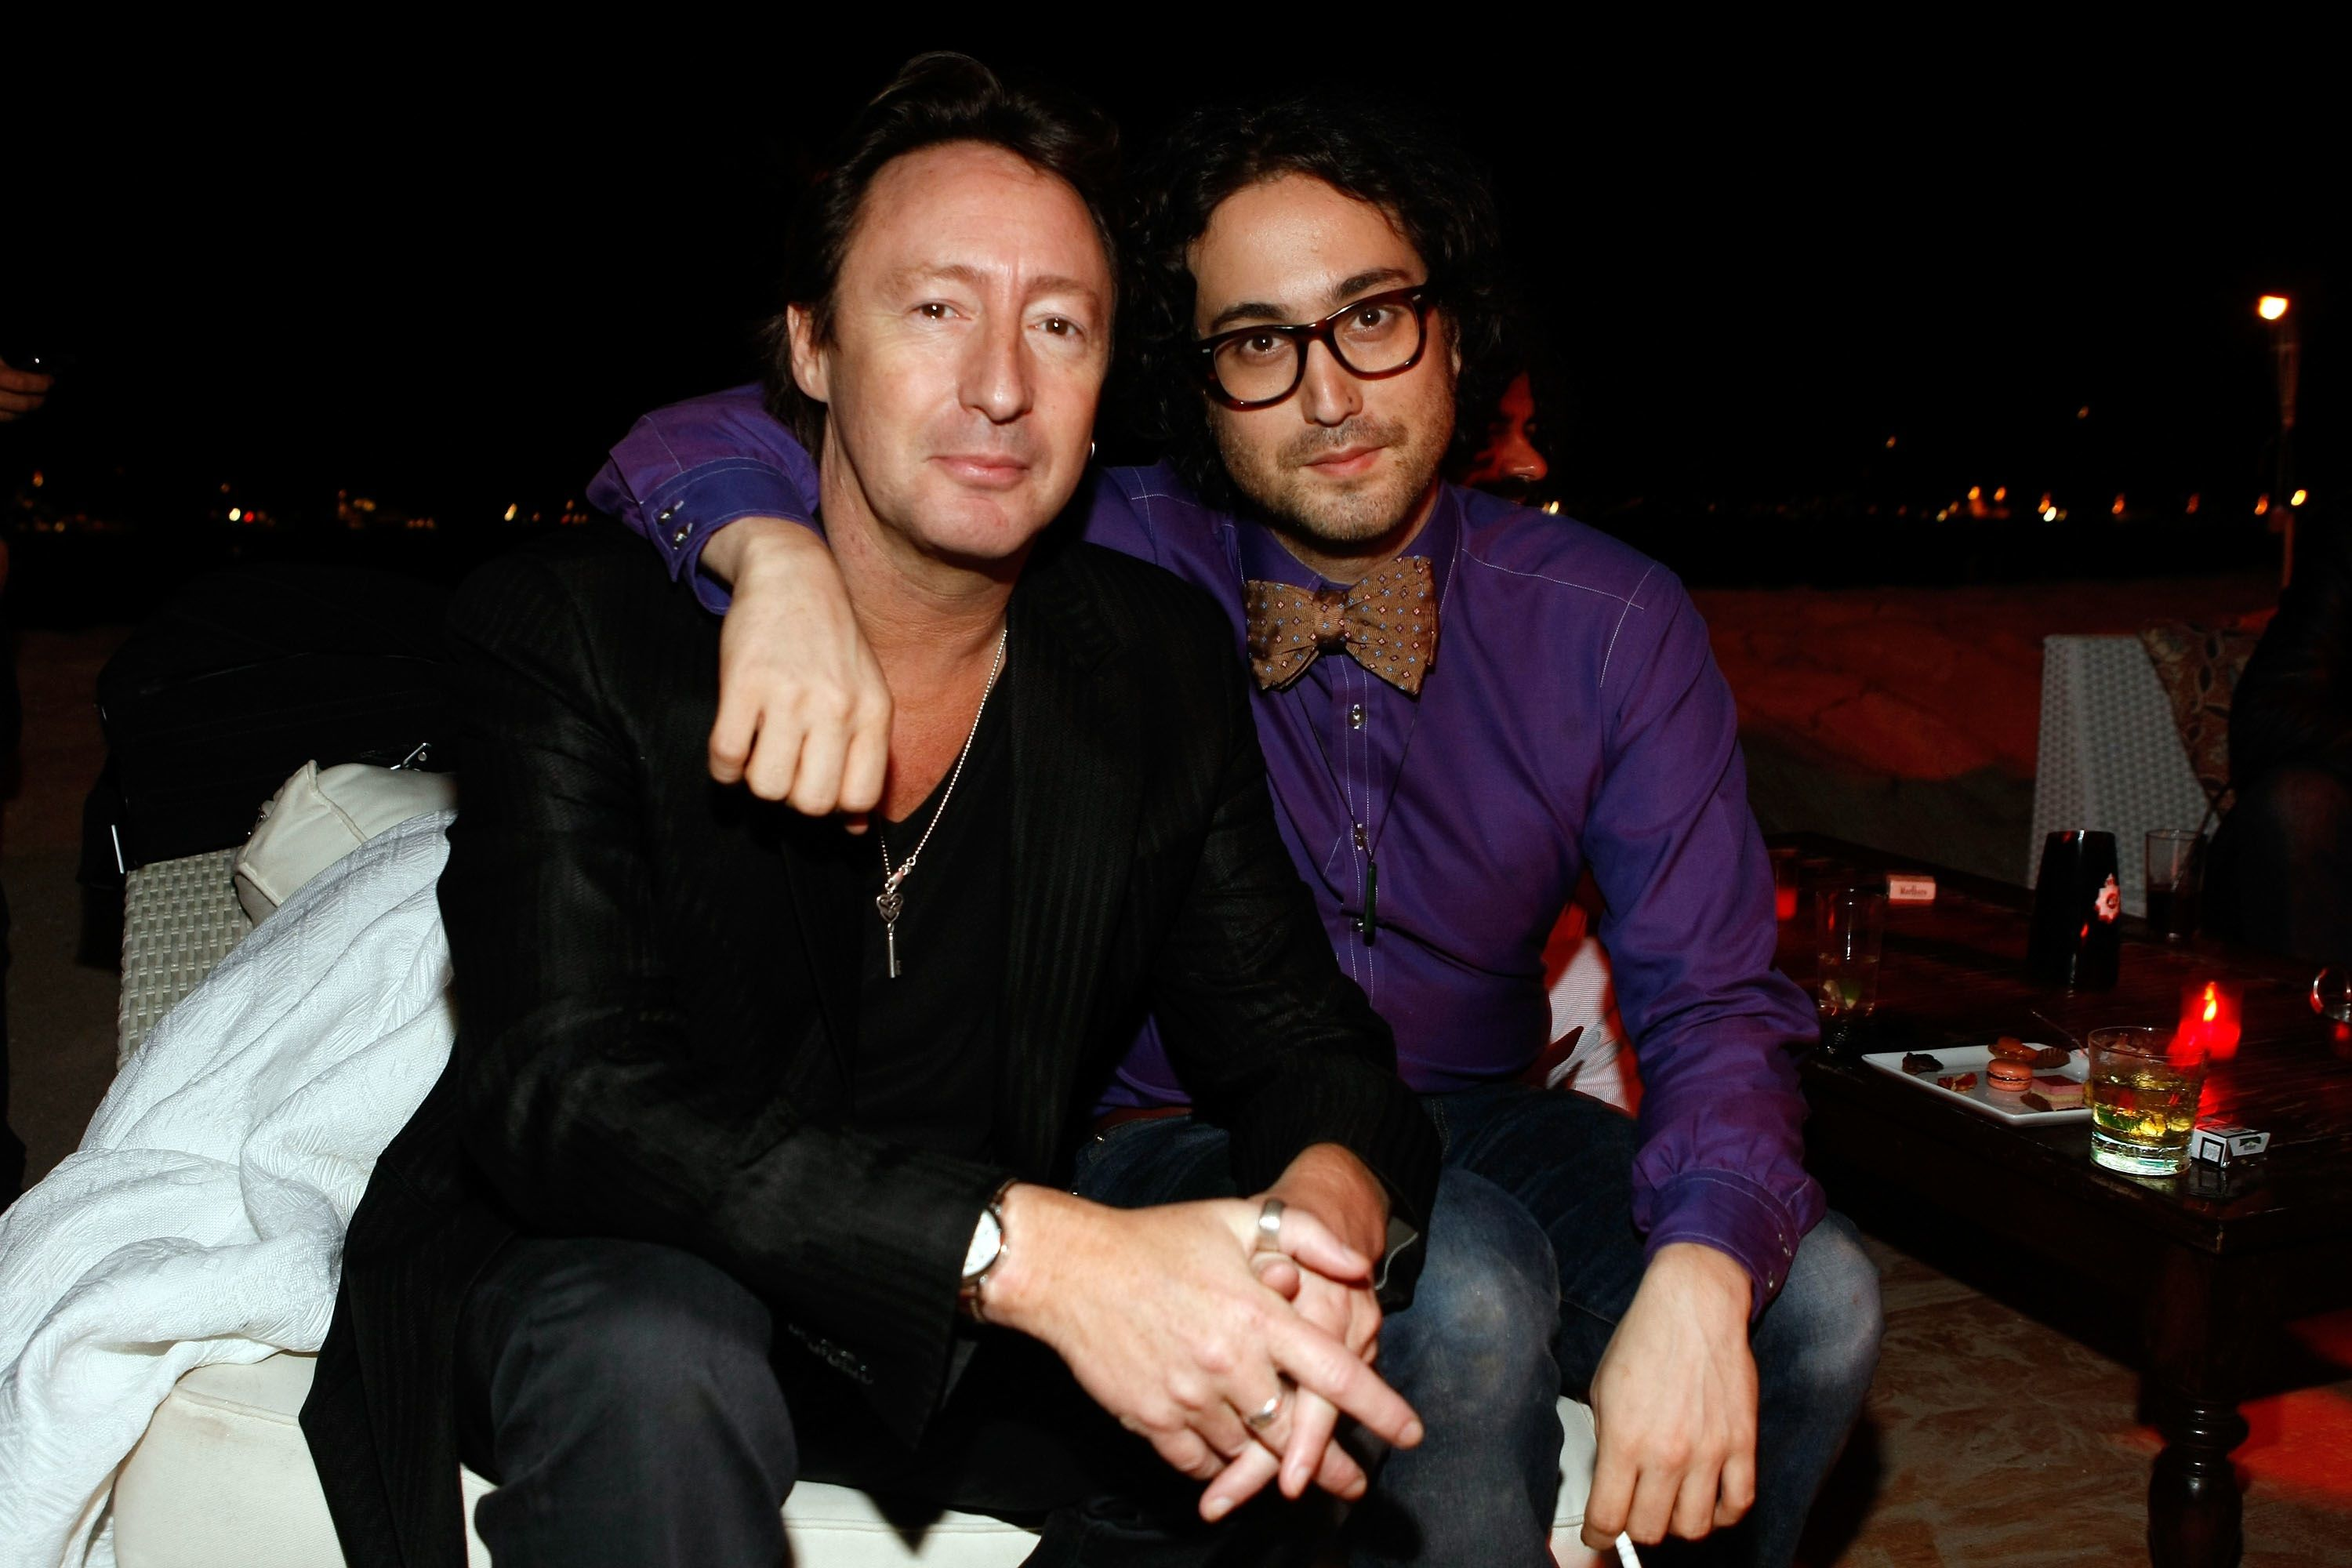 Julian Lennon and Sean Lennon | Julian Lennon | Pinterest ...